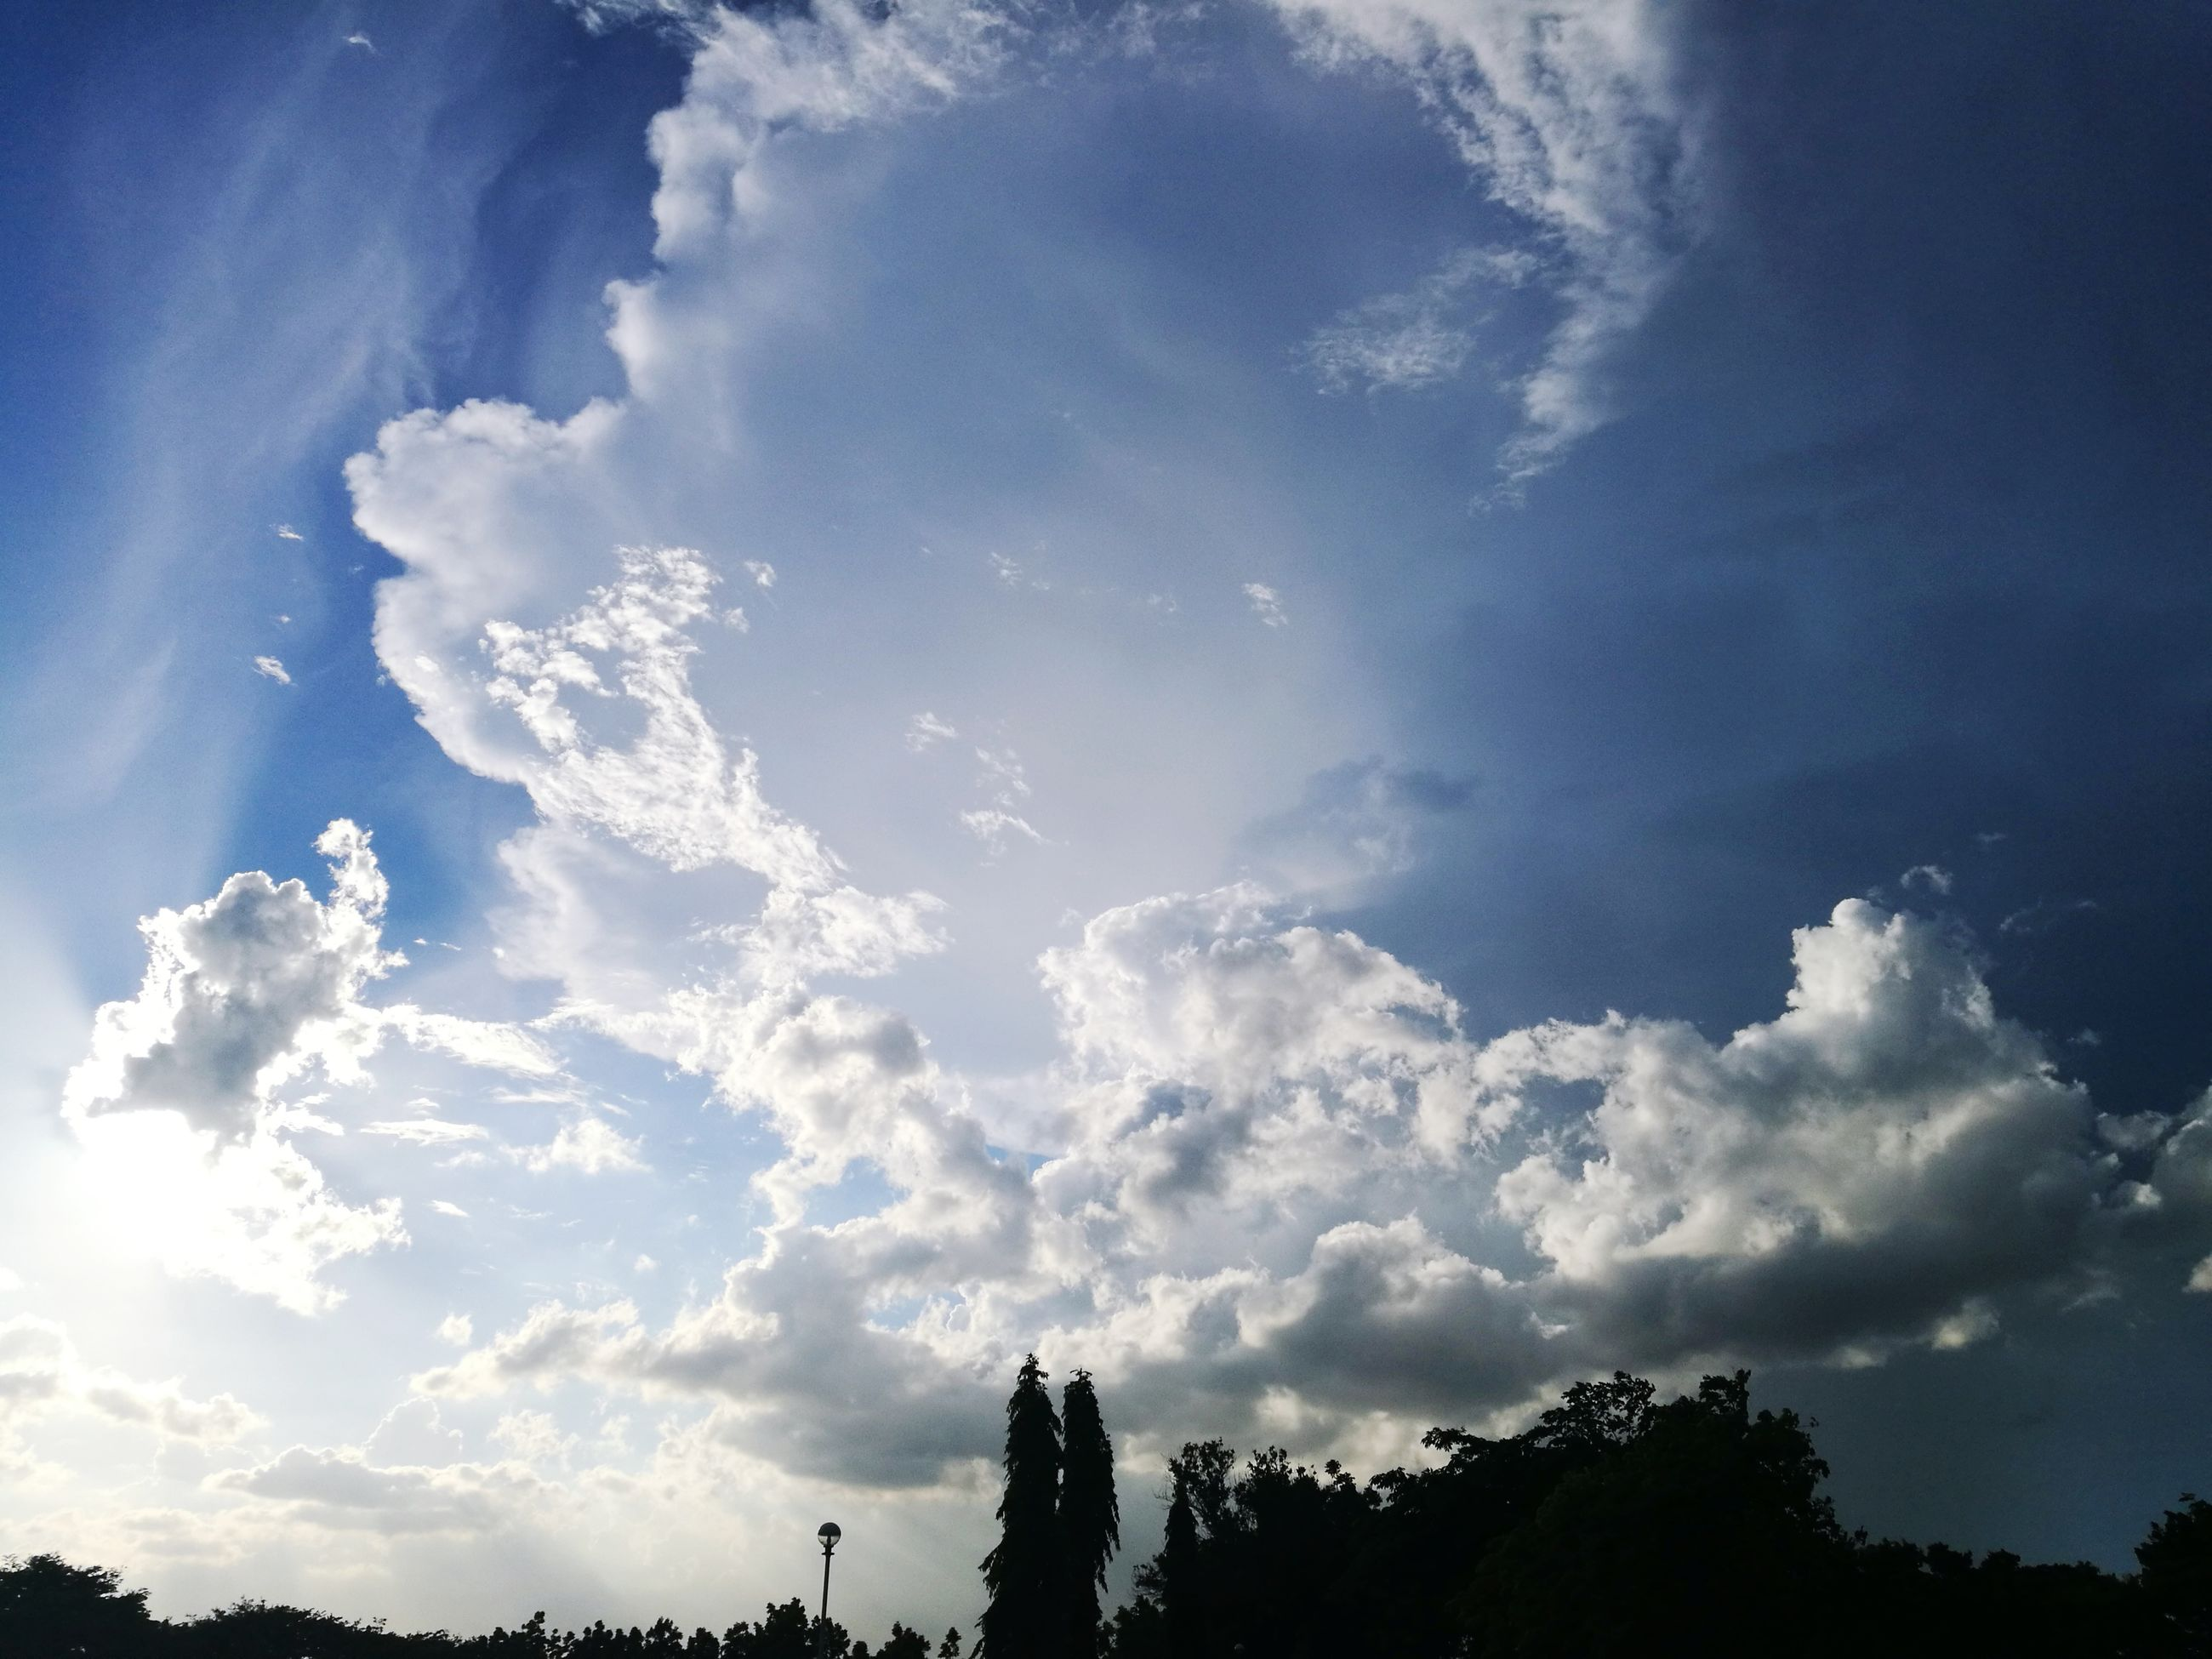 sky, cloud - sky, low angle view, no people, tree, nature, beauty in nature, tranquility, outdoors, day, scenics, blue